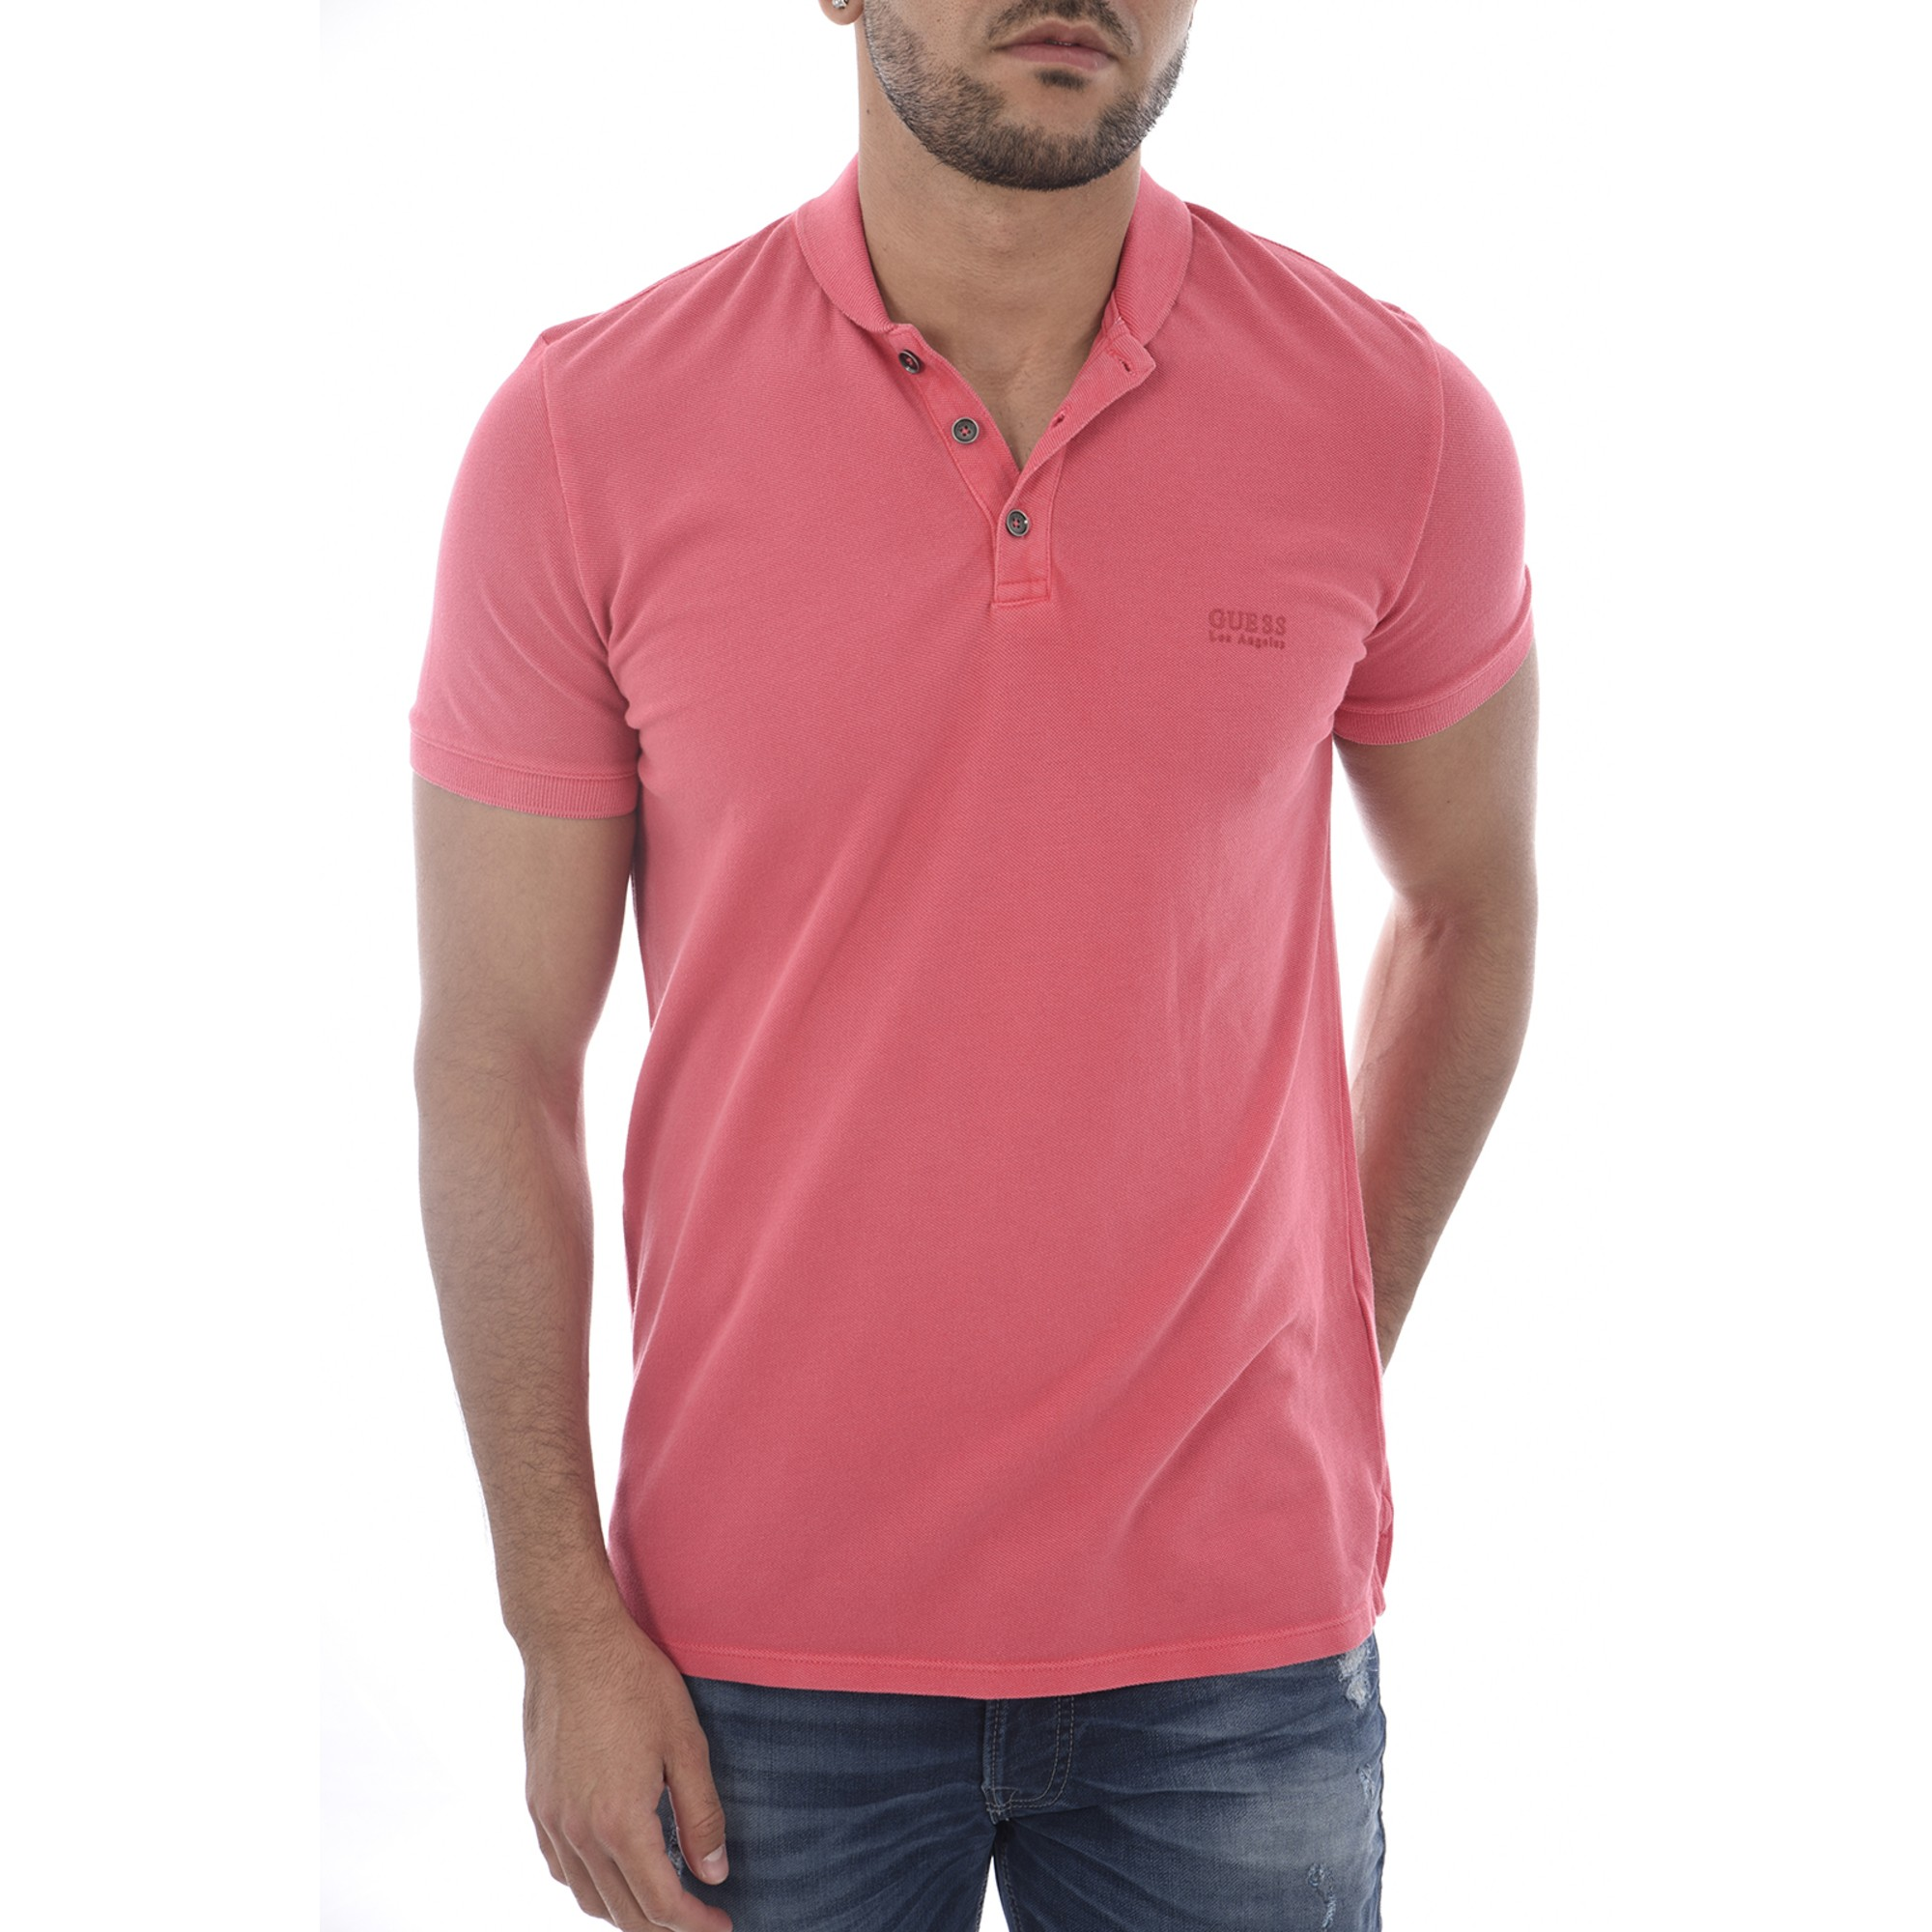 Polo GUESS Rose, fuschia, vieux rose